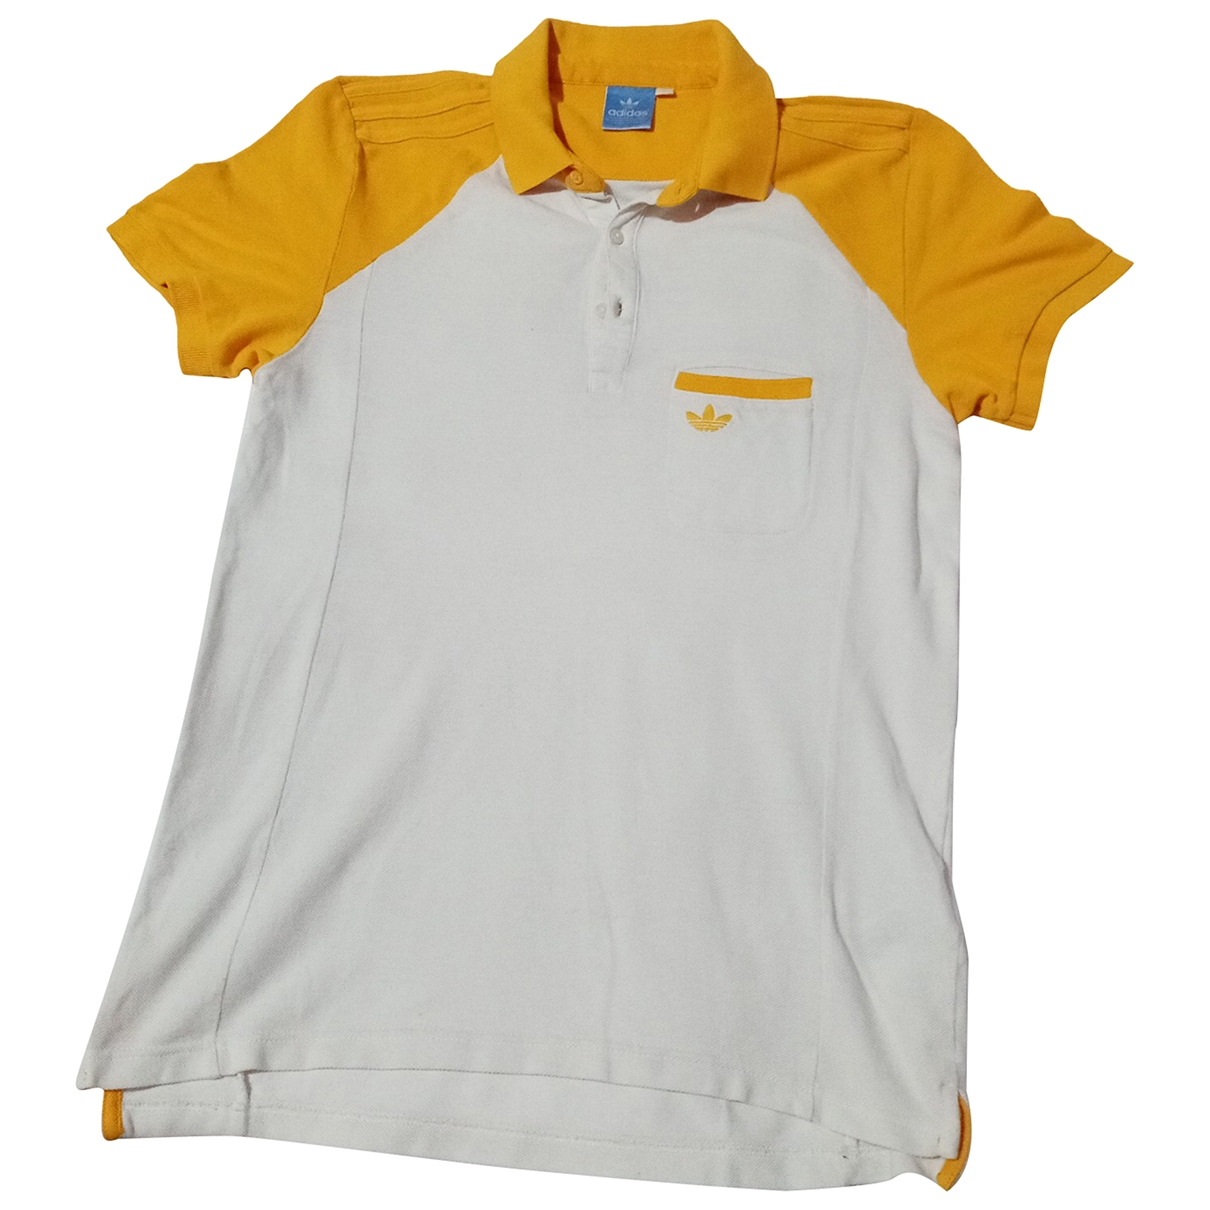 Adidas \N Yellow Cotton Polo shirts for Men S International